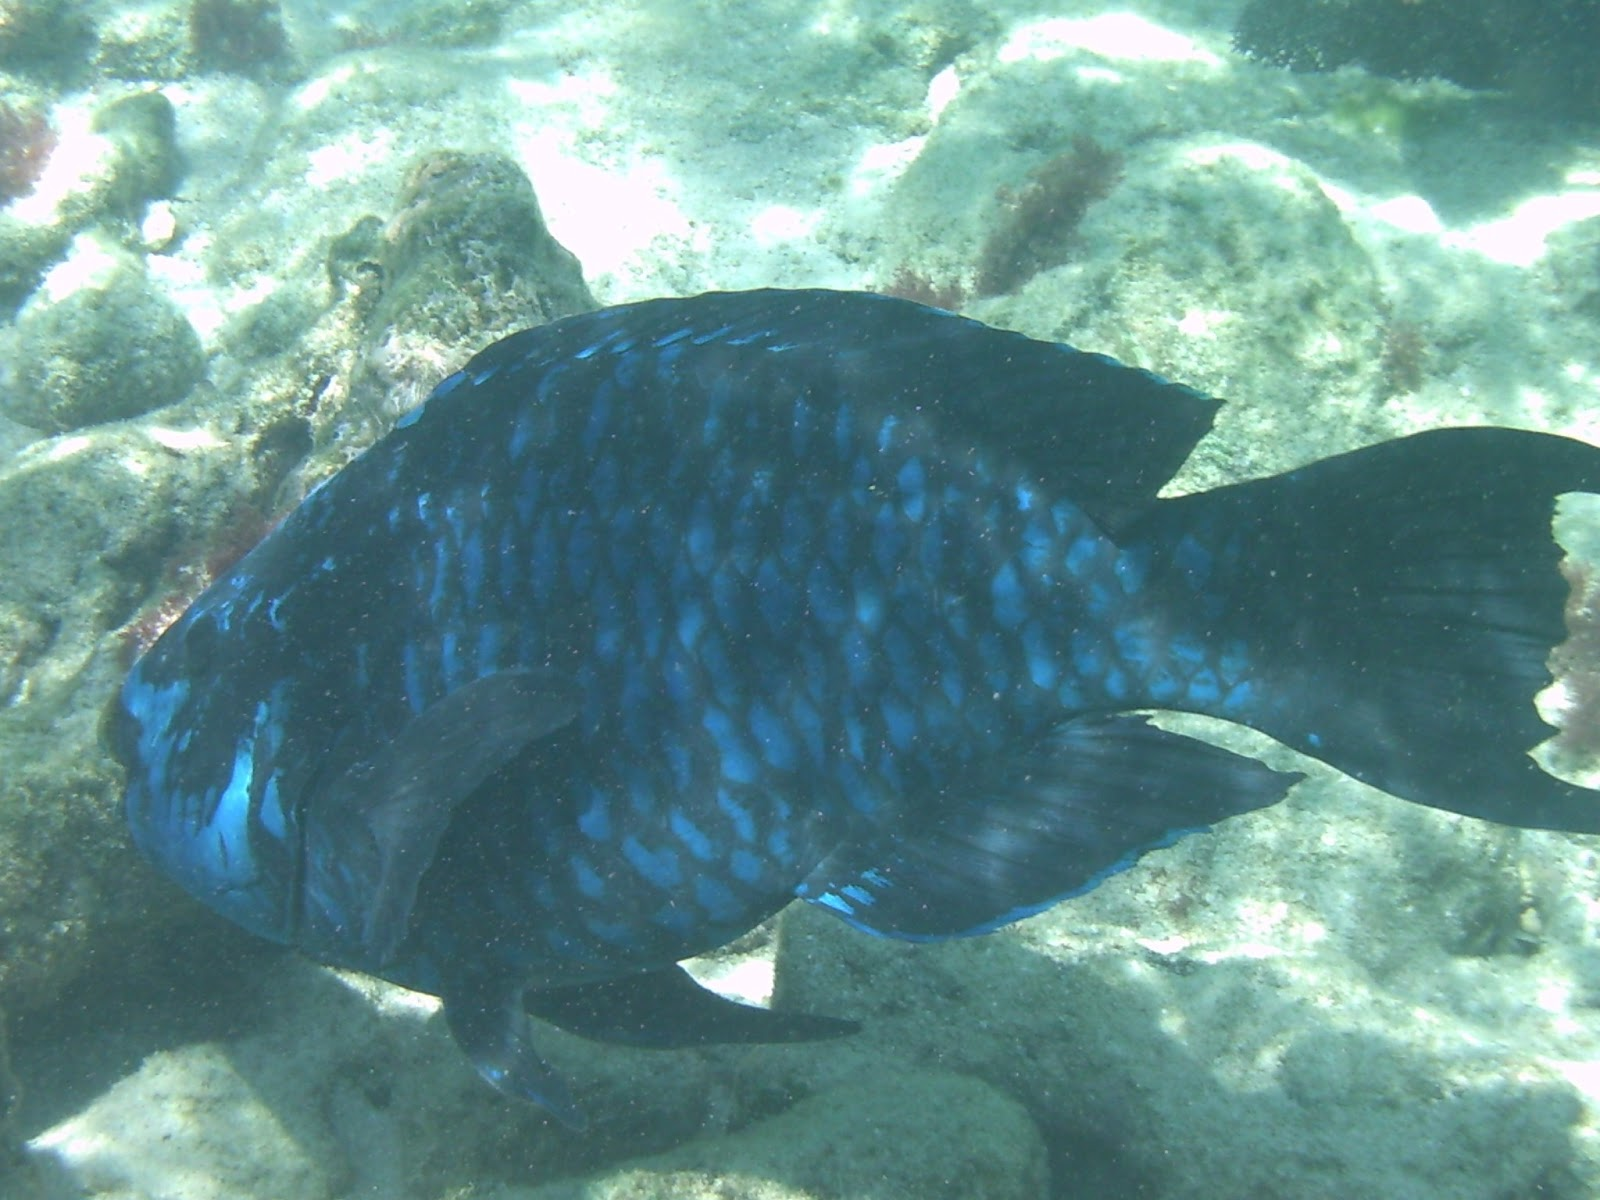 Cool change looes key and sombrero reef for Blue parrot fish